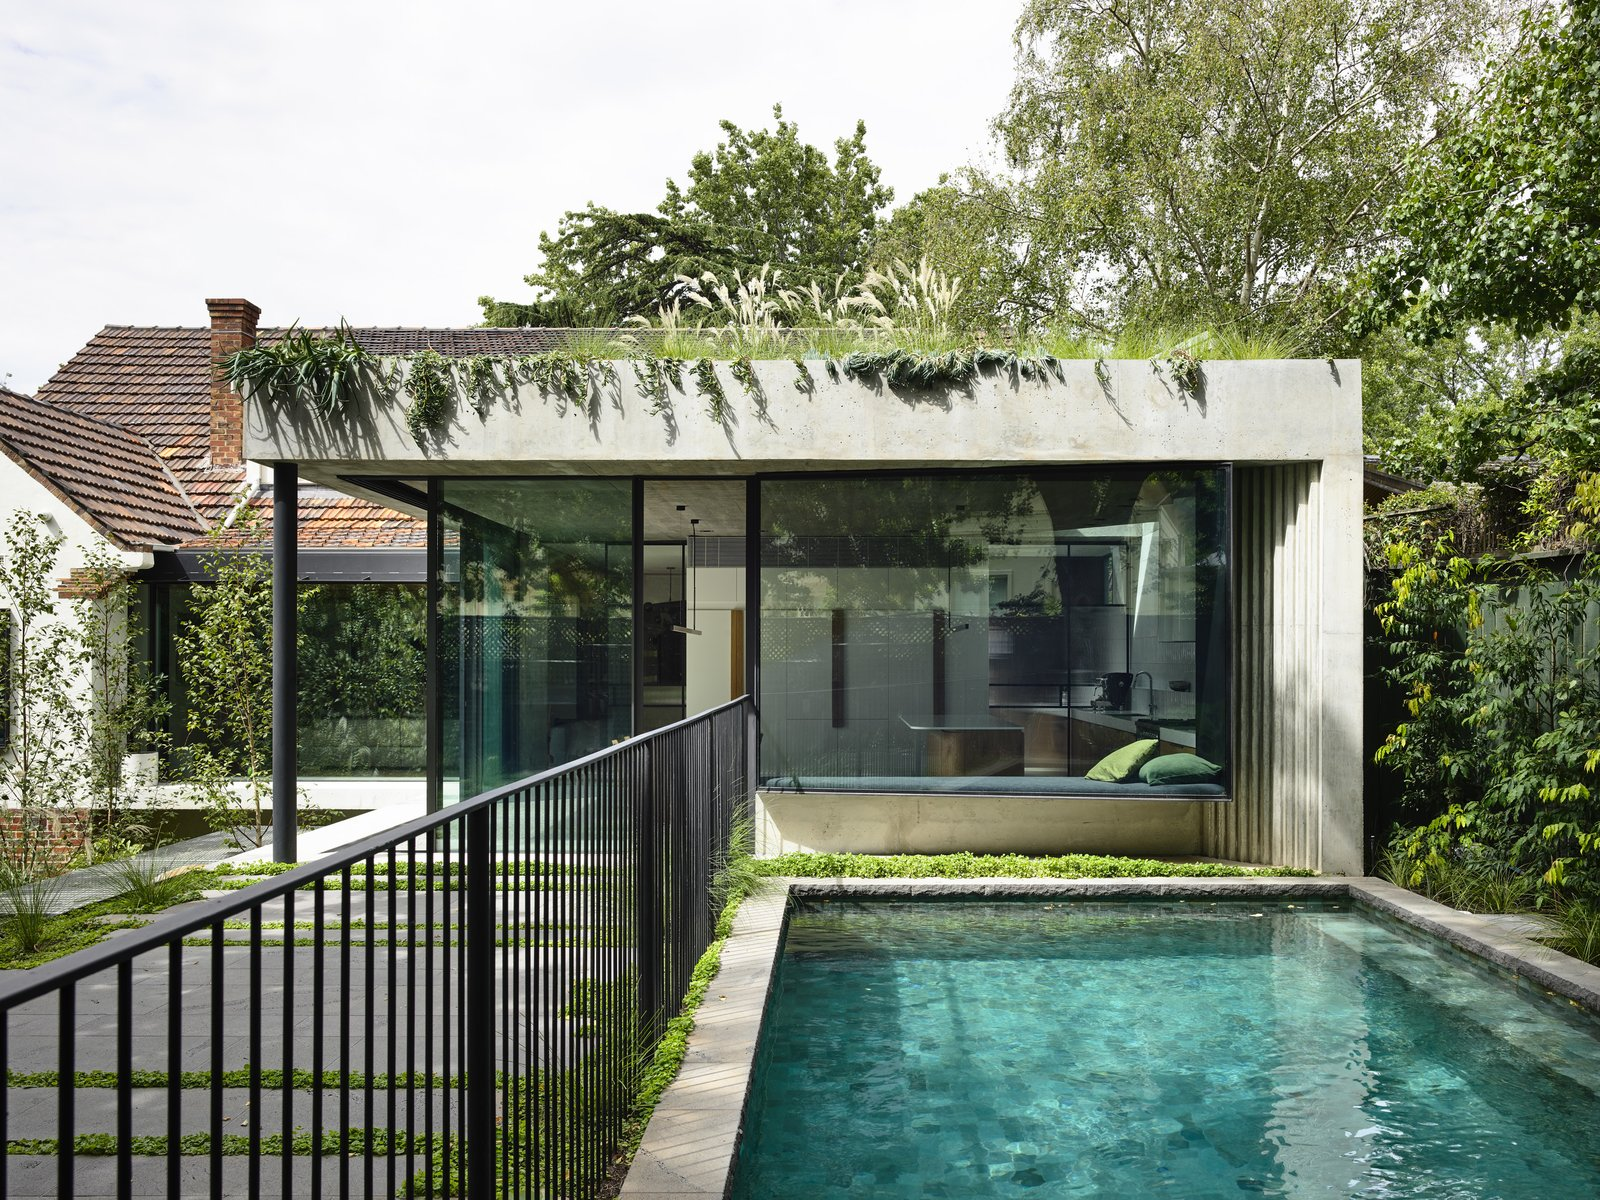 Photo 1 of 18 in A Concrete and Glass Pavilion Opens This 1930s Home to a Tiered Garden